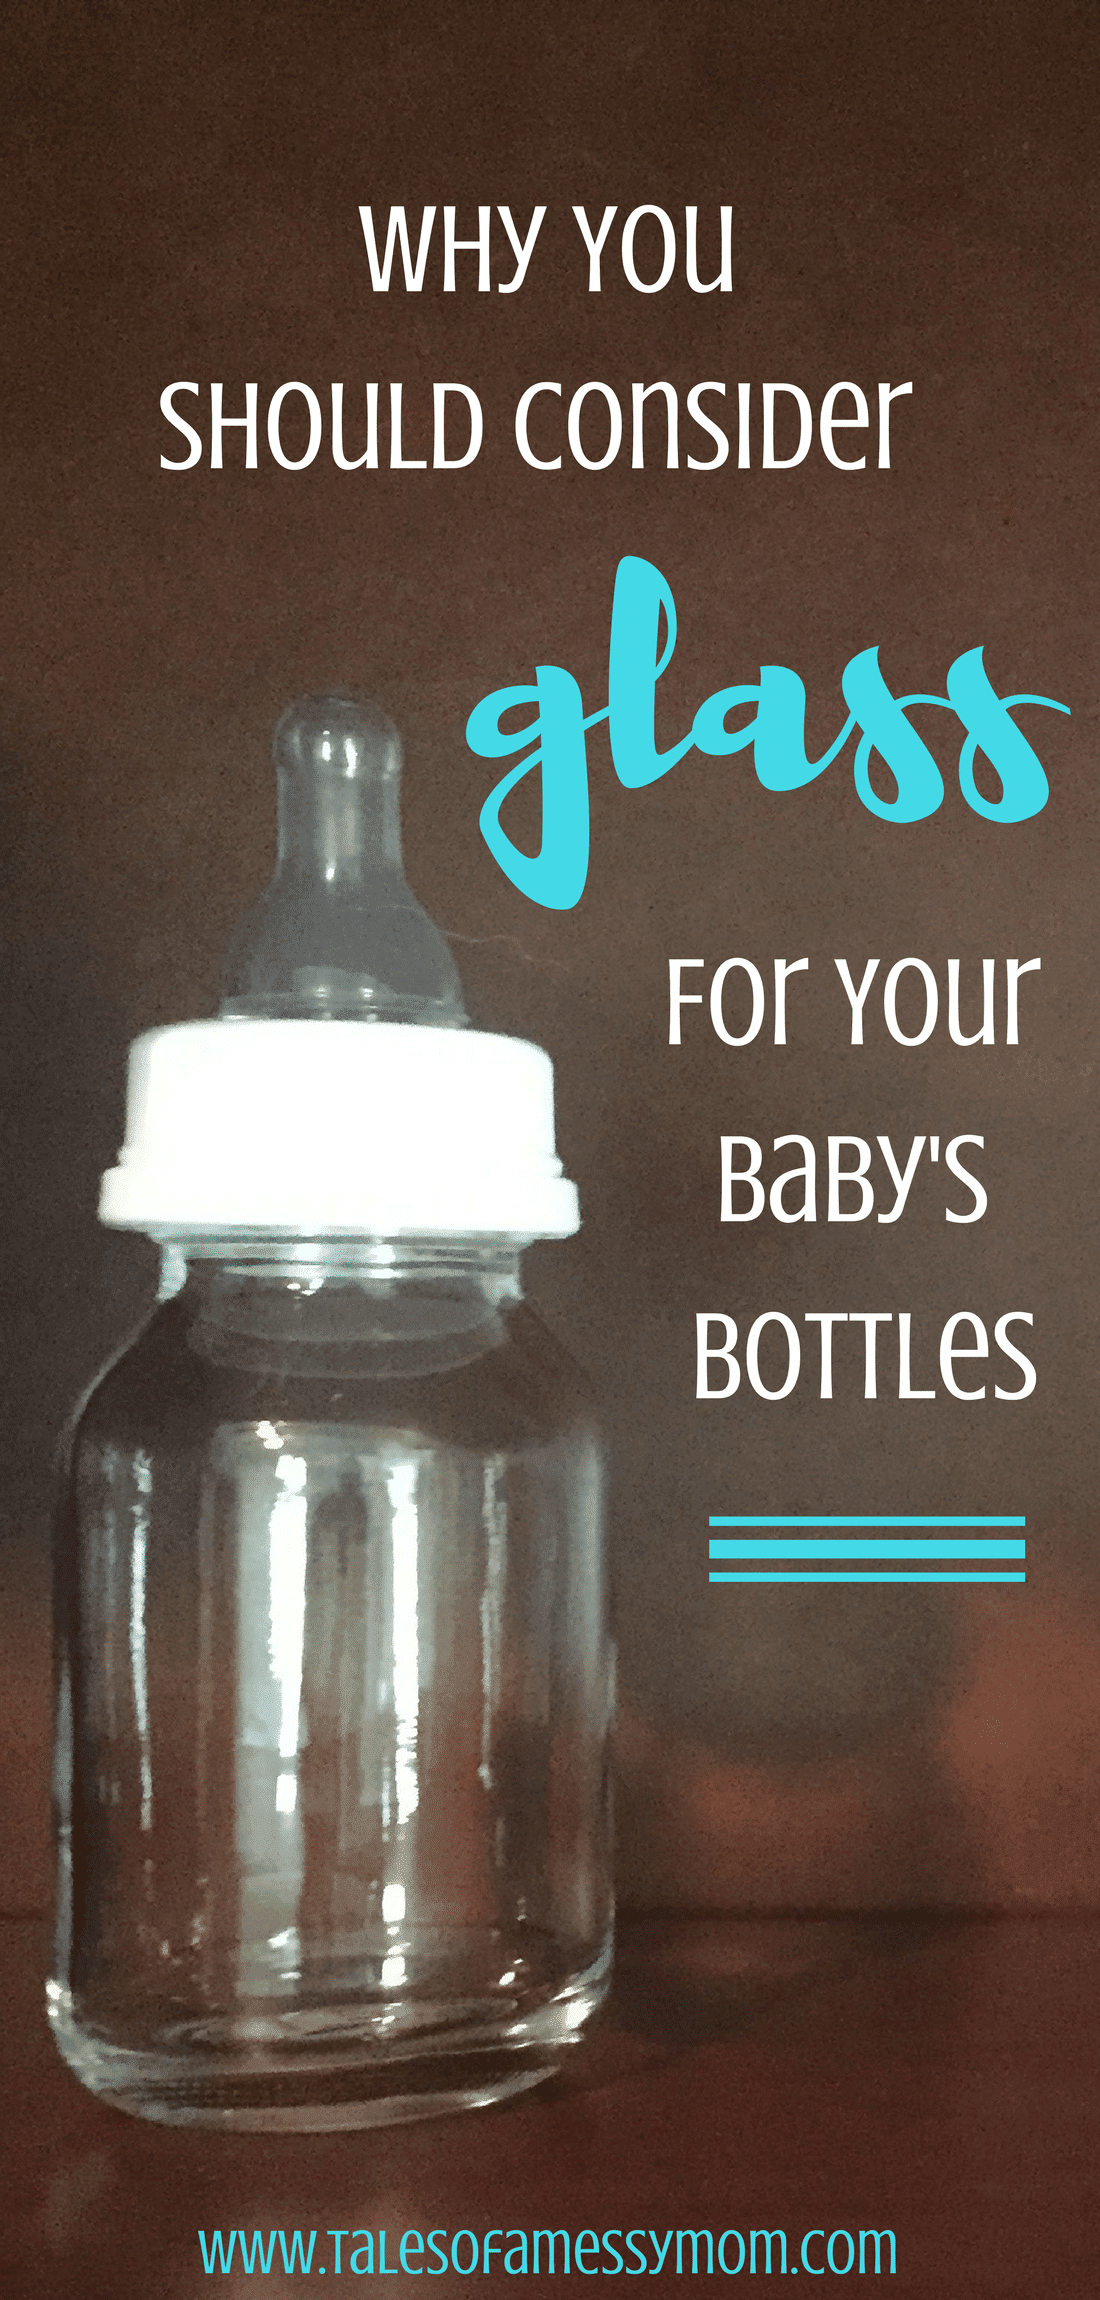 Here are 7 amazing benefits that will make you want to choose glass for your baby's bottles. http://www.talesofamessymom.com